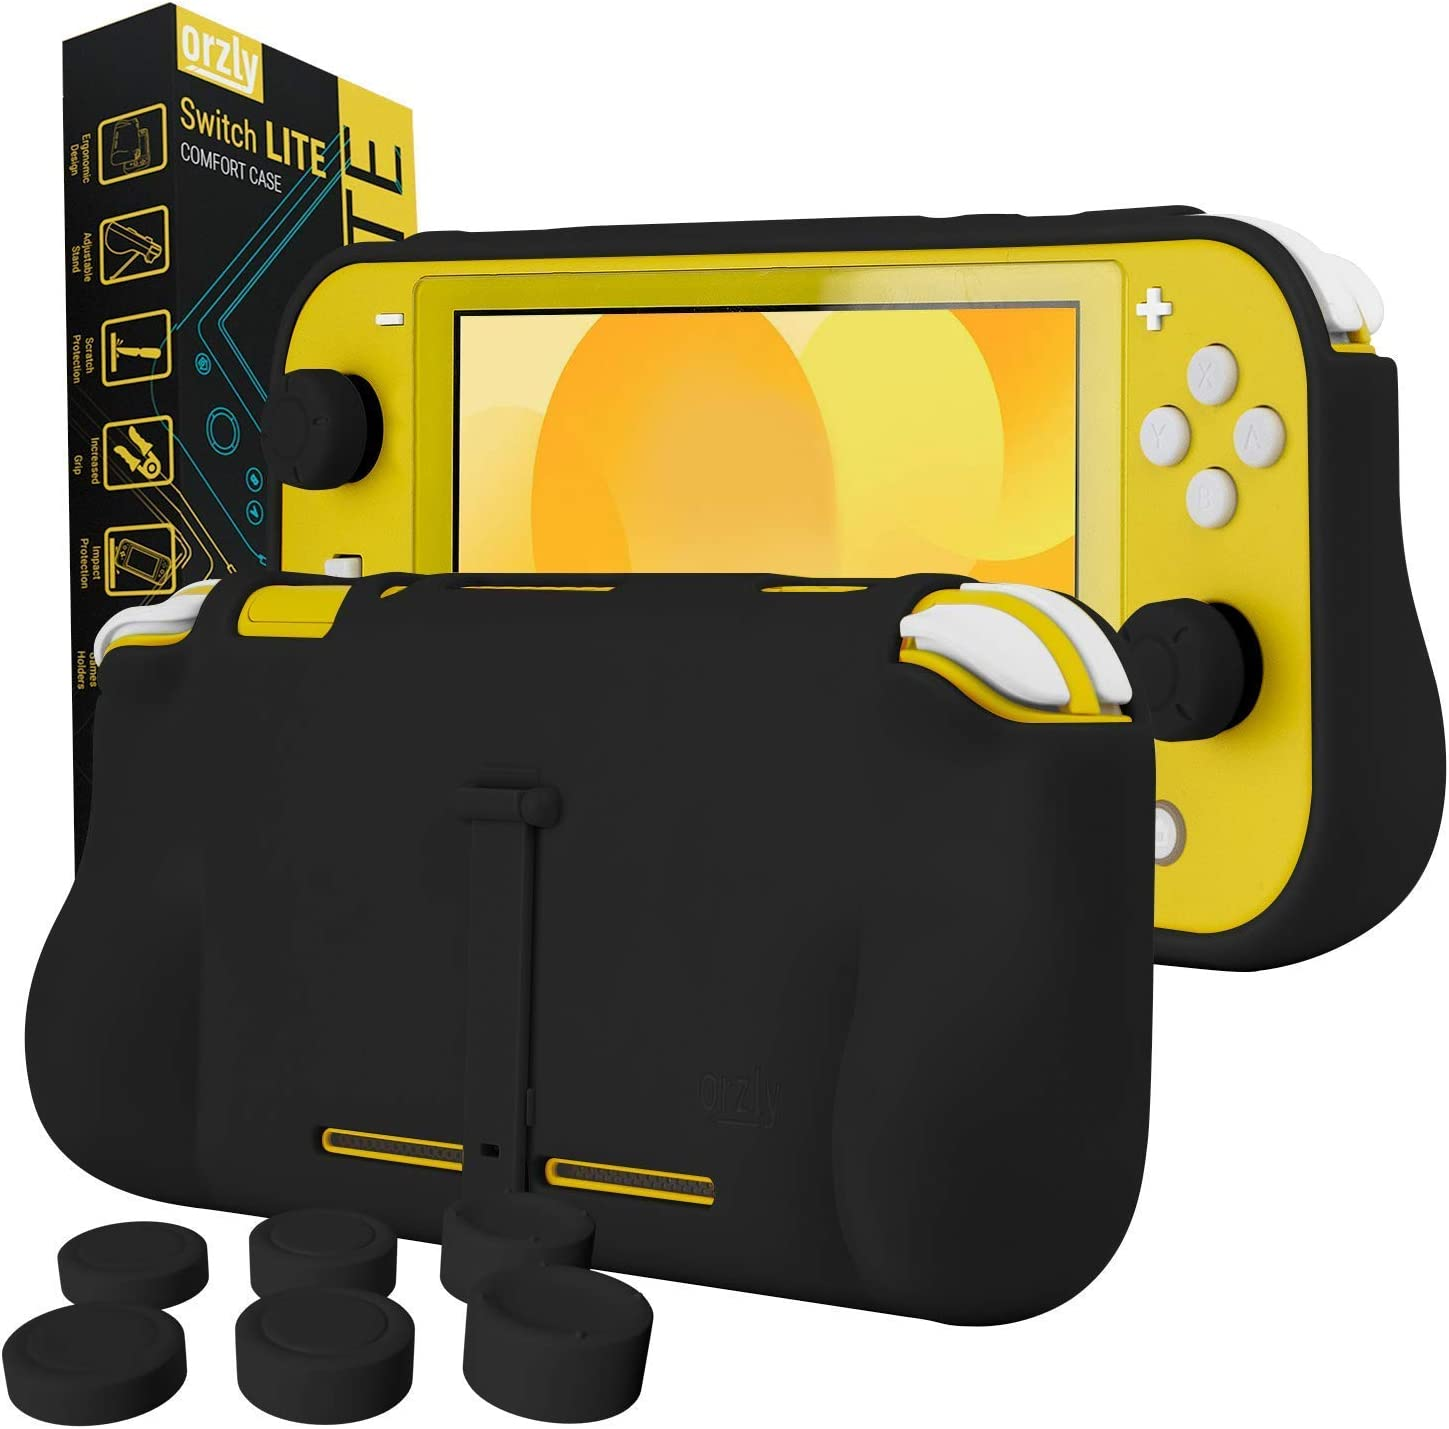 Xiaoa Switch Lite Host Two in One TPU Protective Shell with Stand Can Accommodate 2 Game Card Protectors